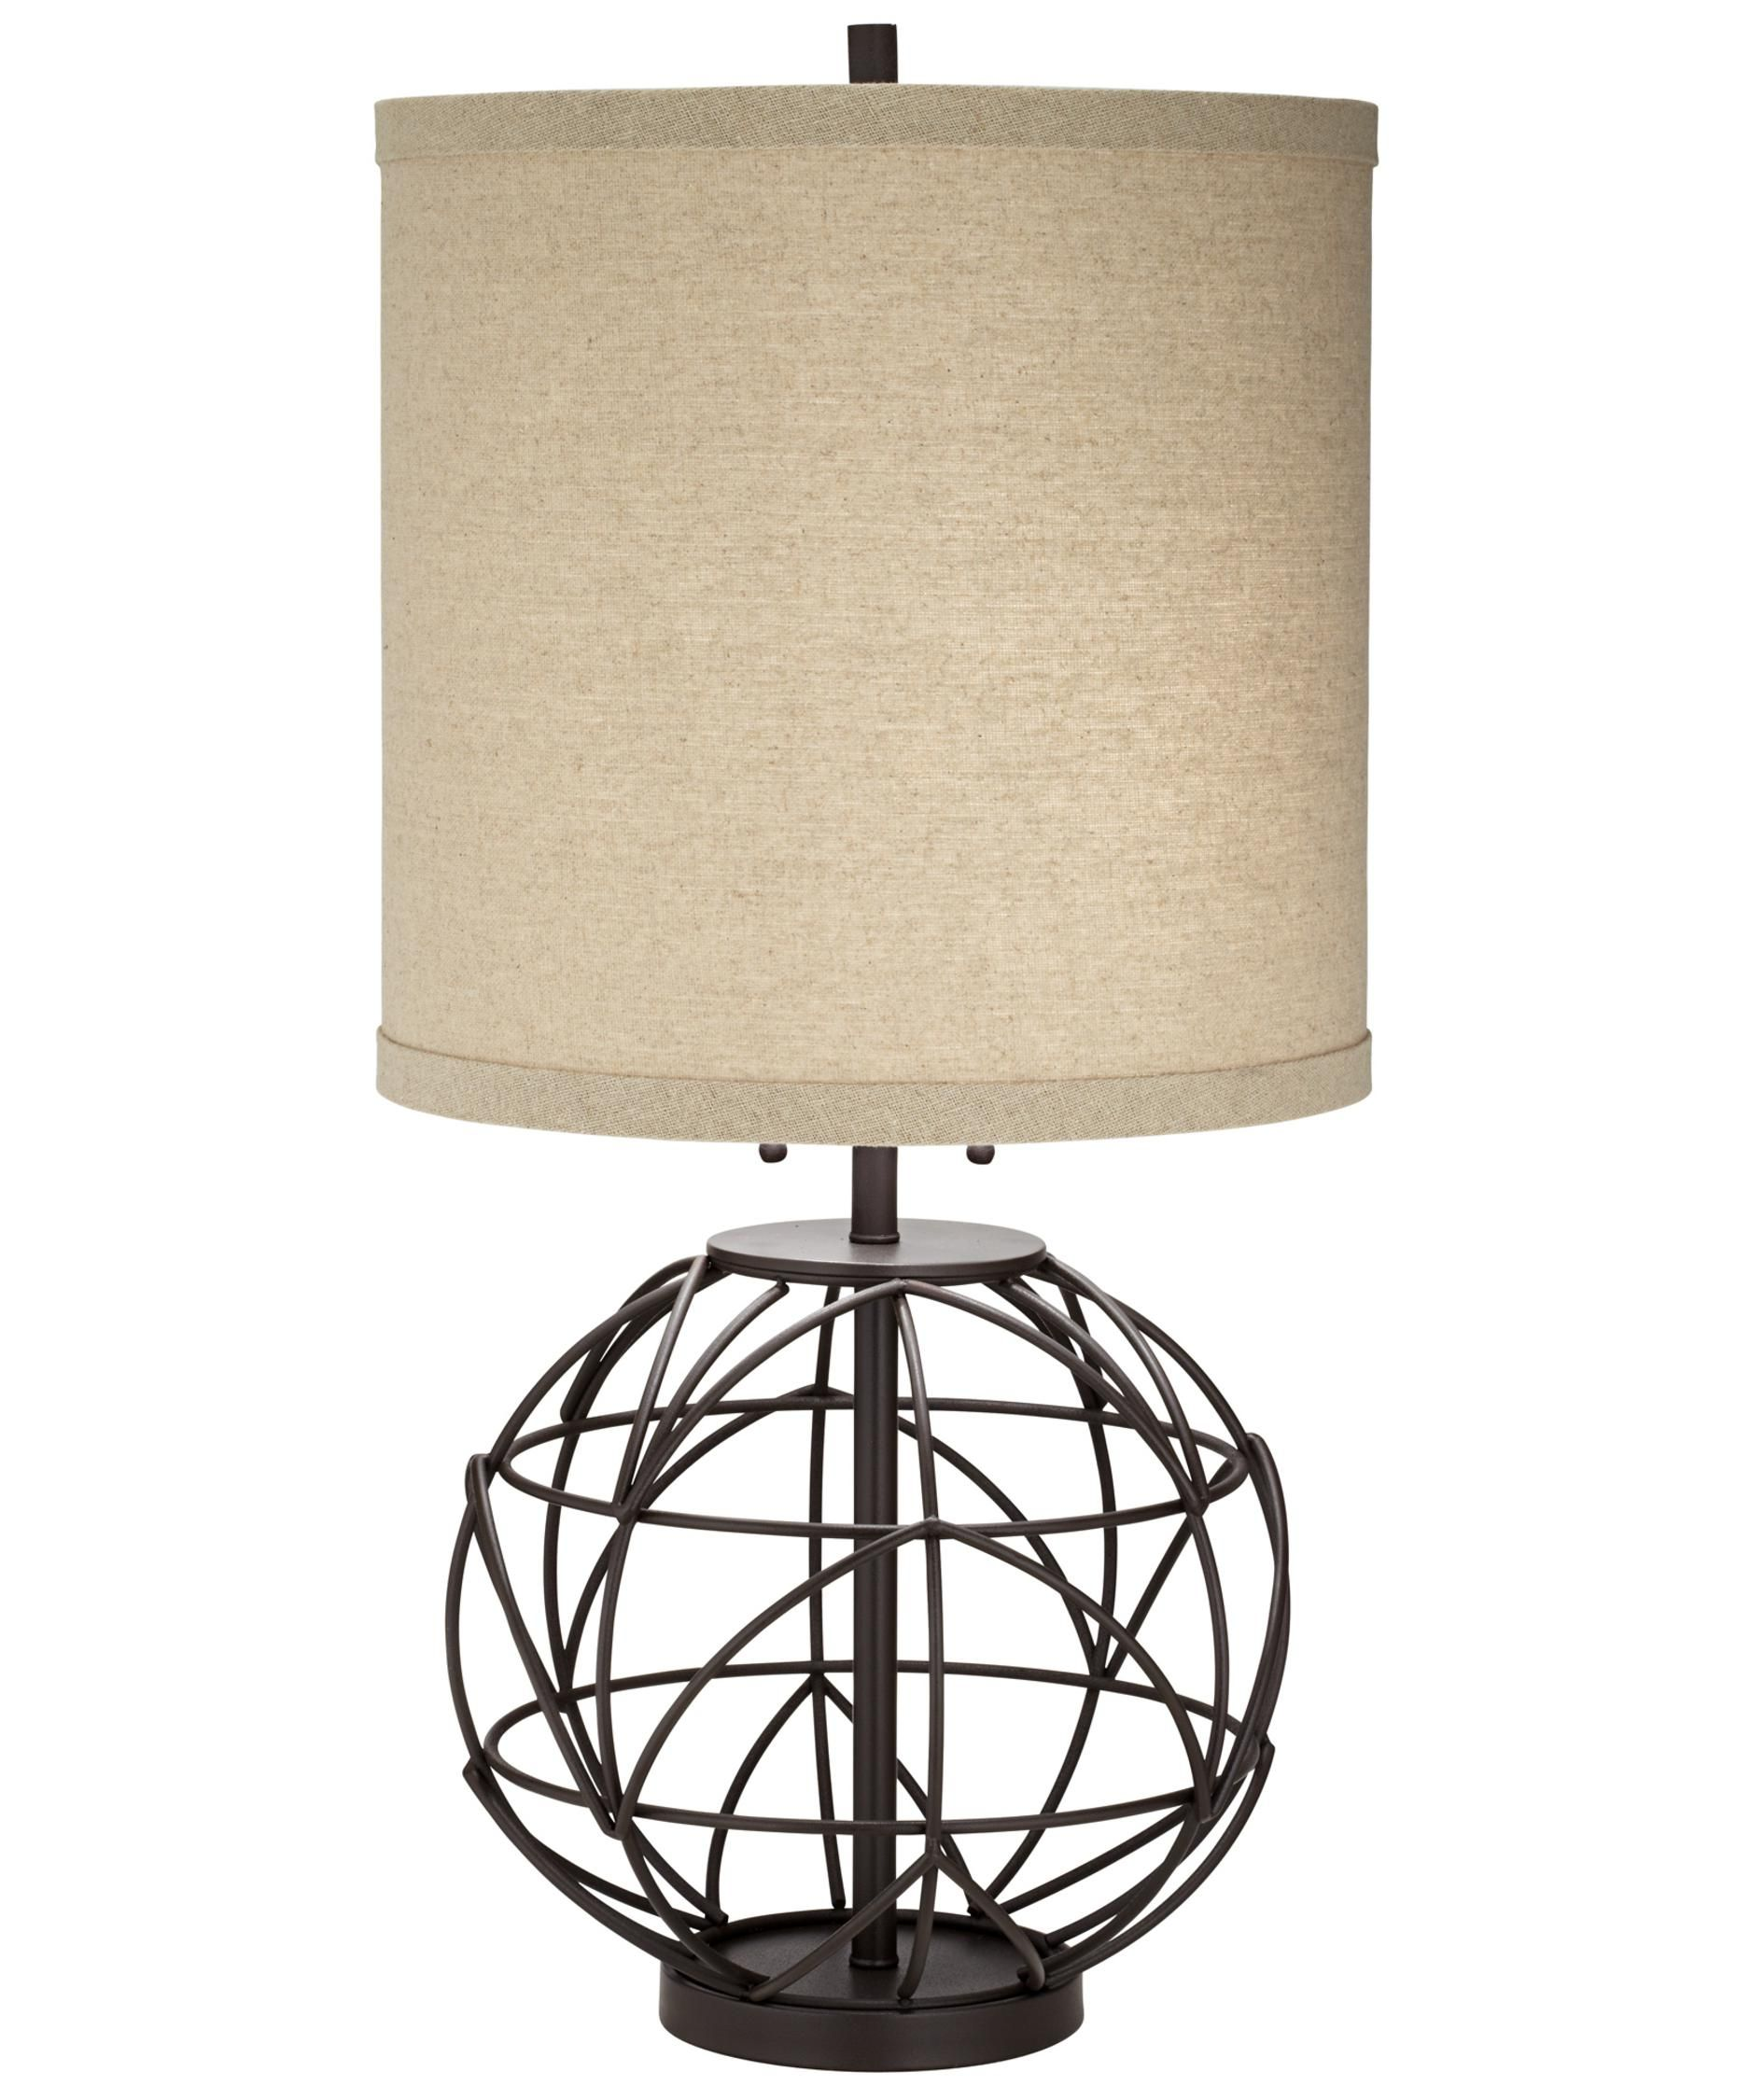 Open Wire Lamps - WIRE Center •